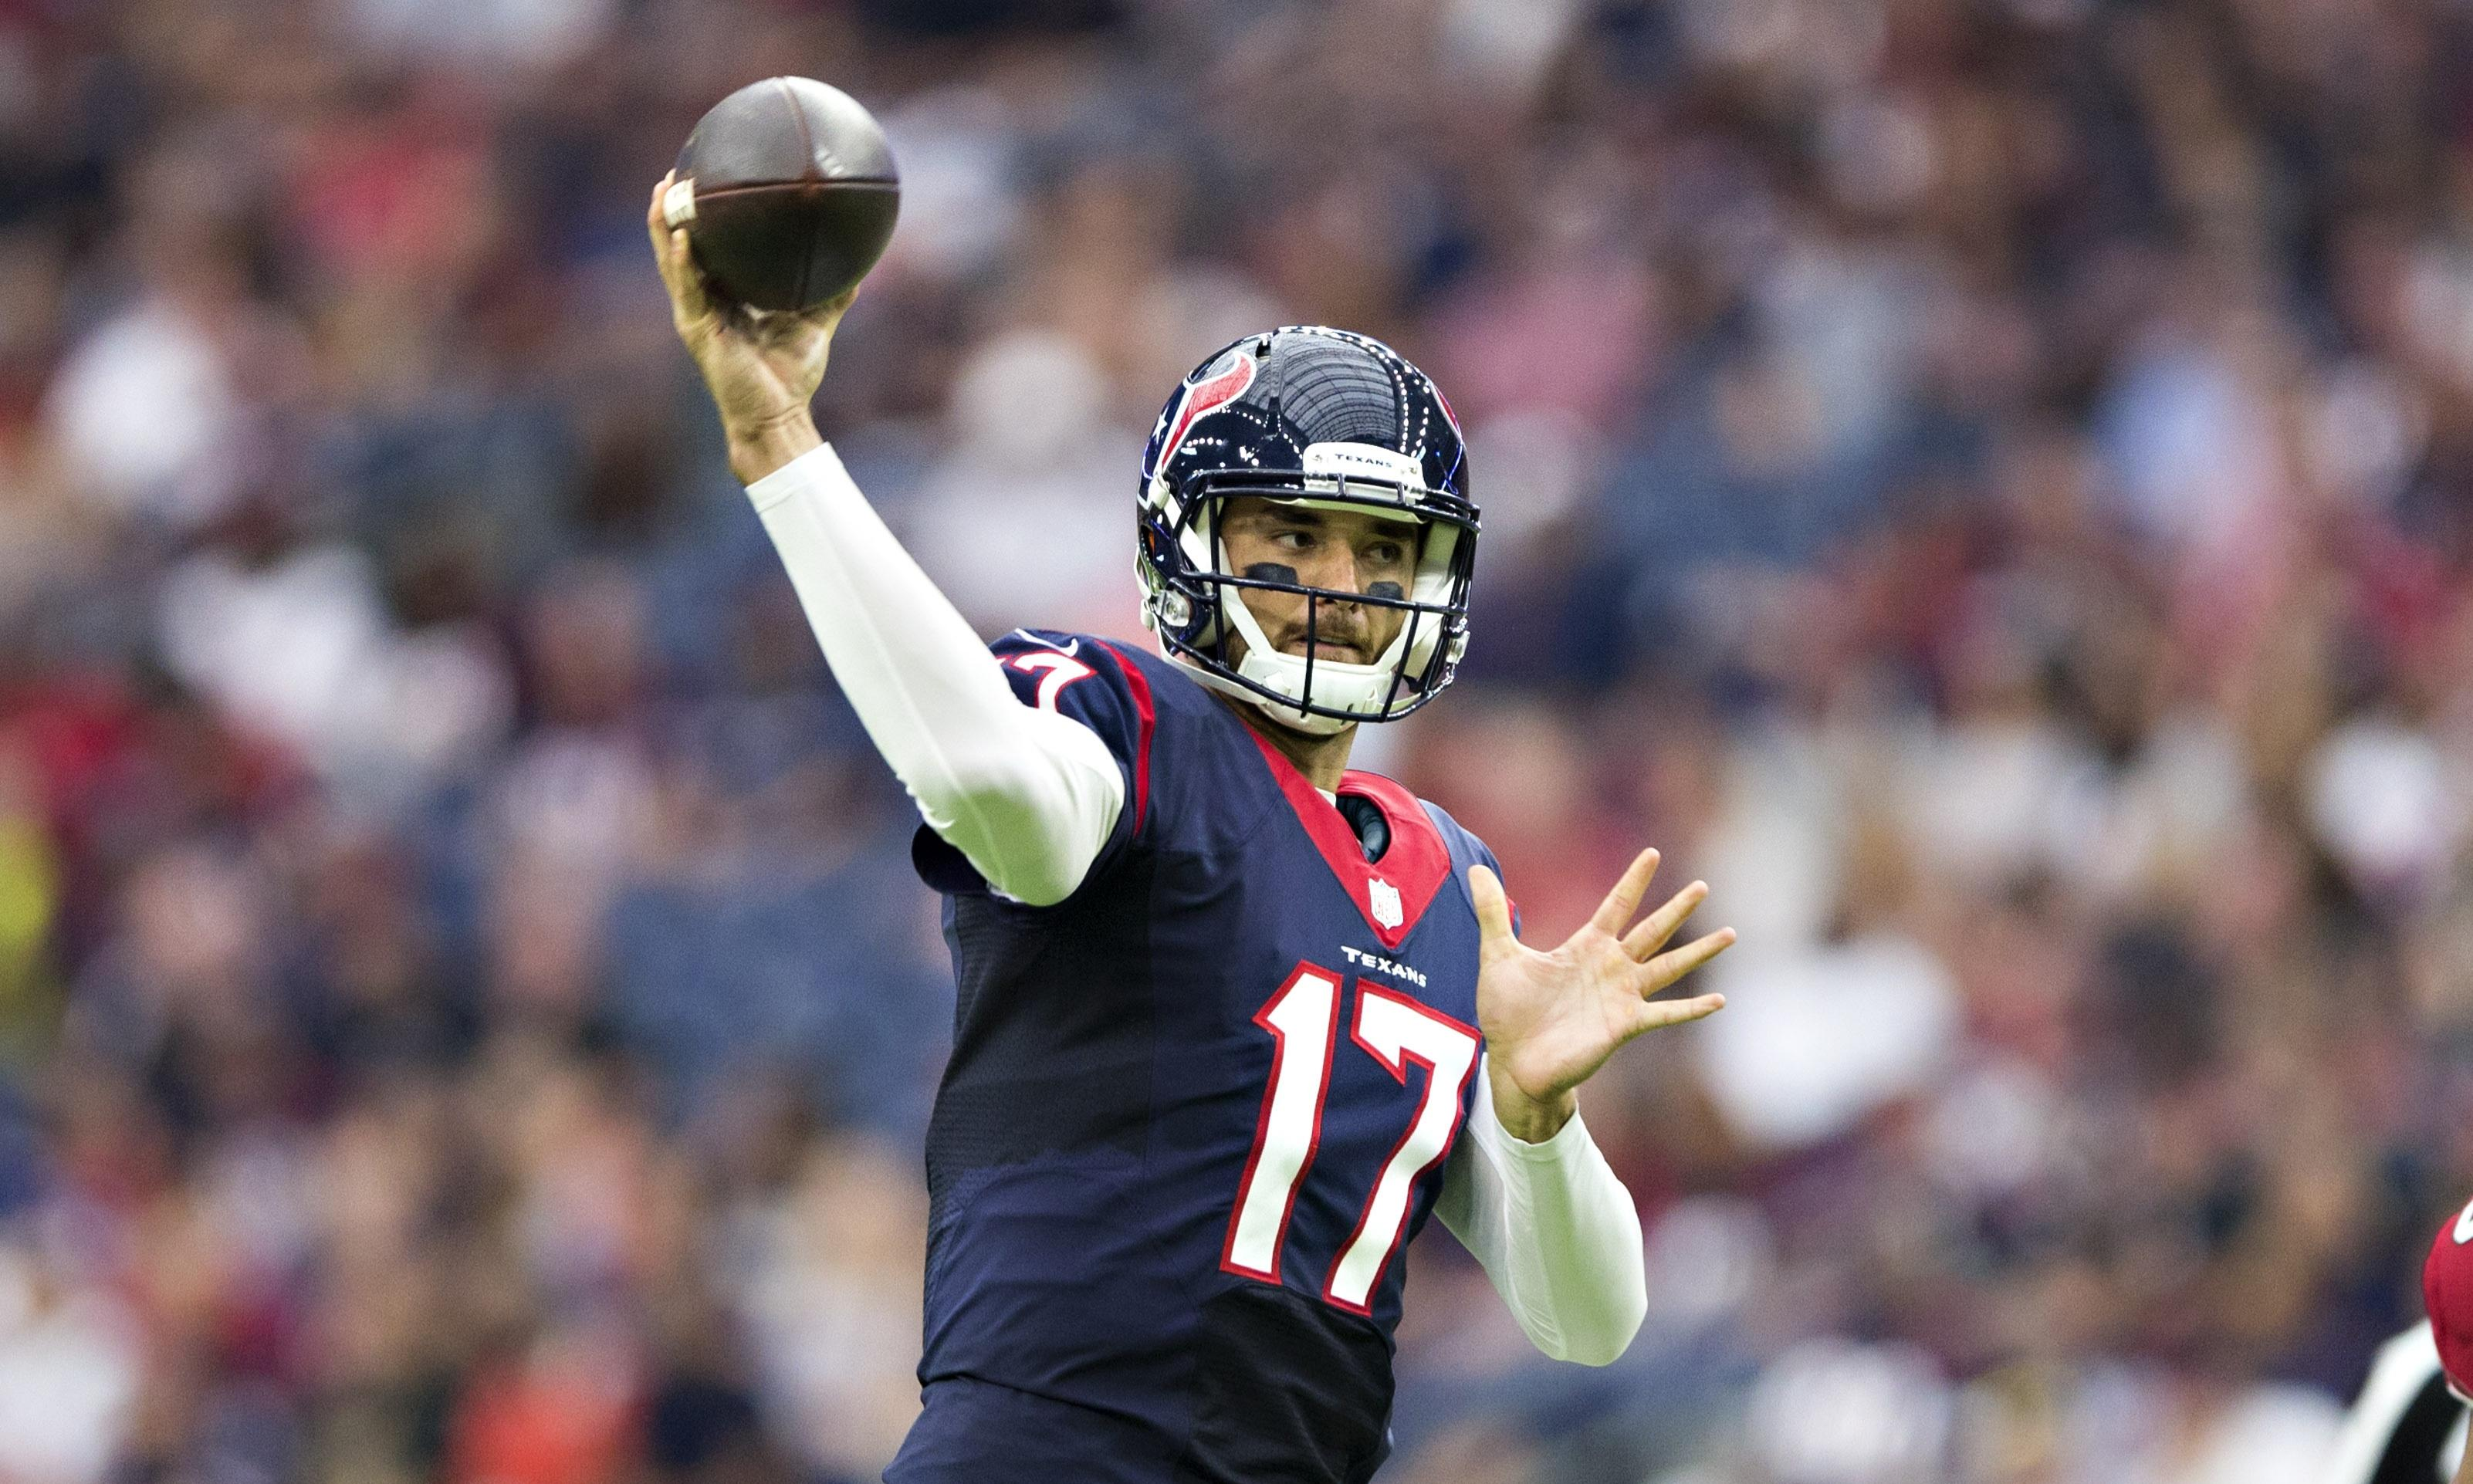 $1m per touchdown: did Brock Osweiler have the easiest ever NFL career?